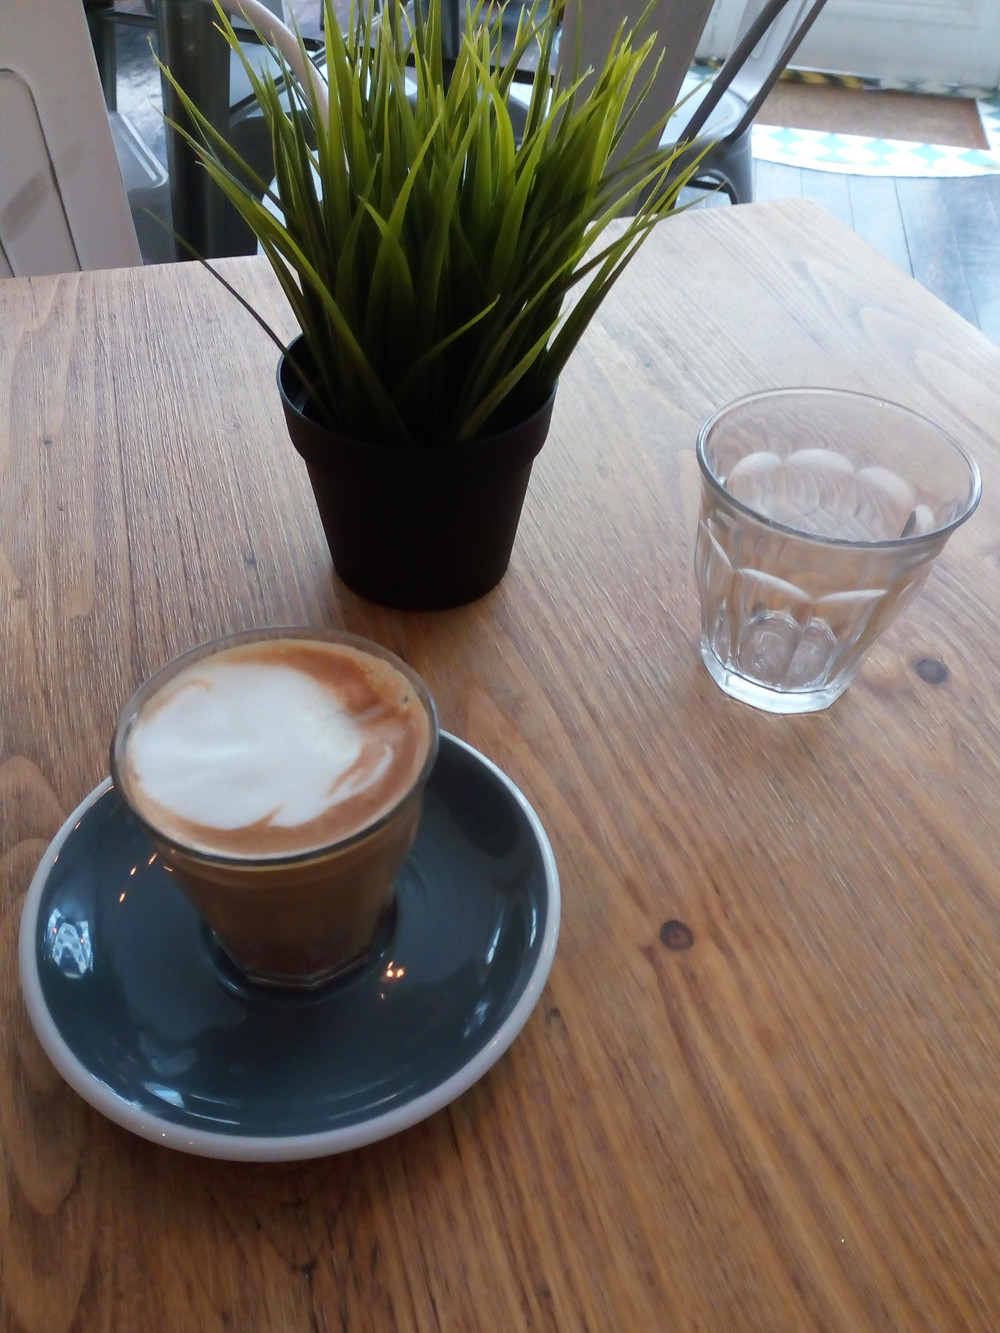 Ethical coffee & a plastic plant